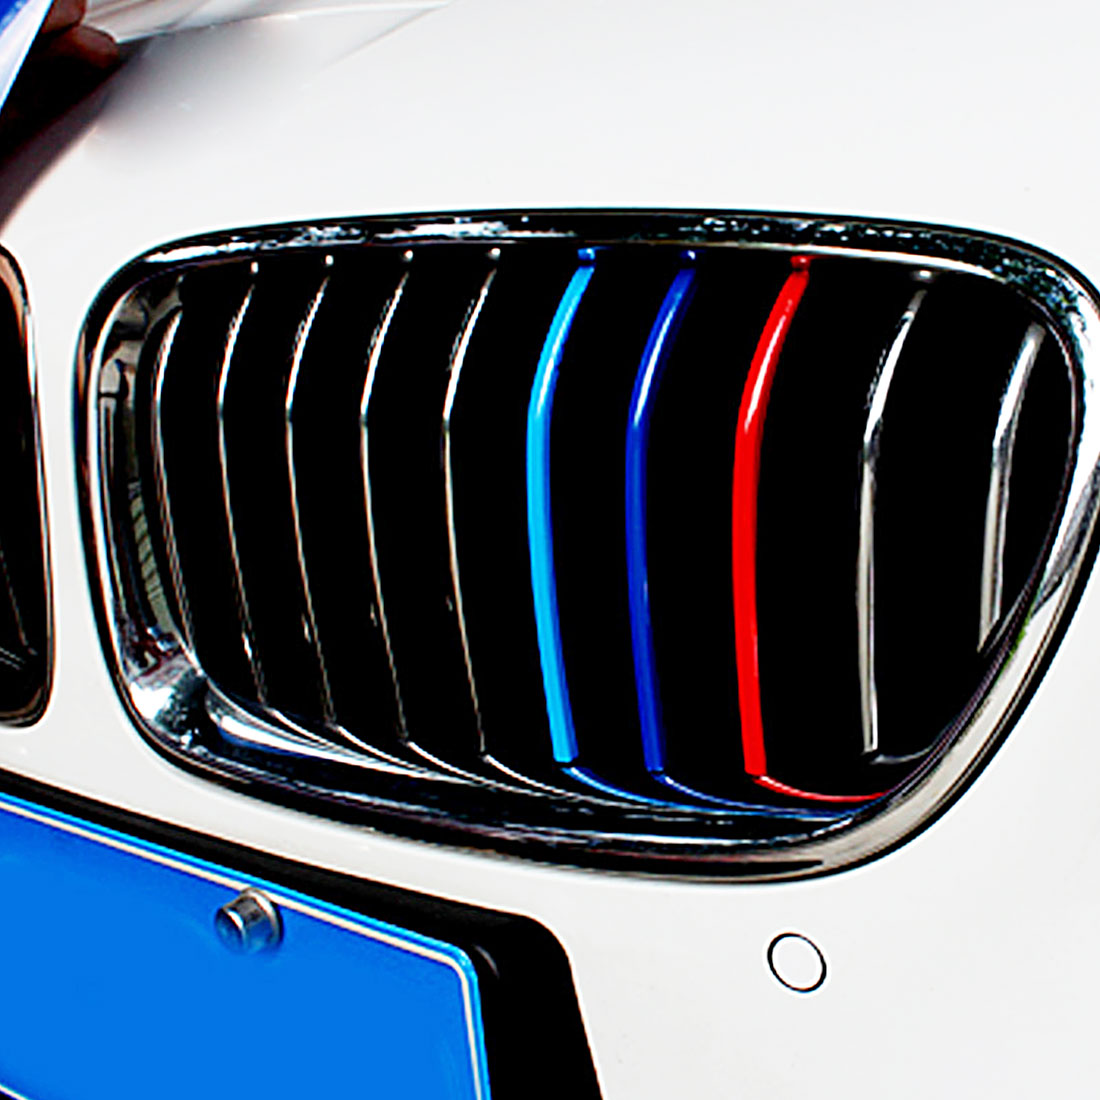 Dewtreetali super offer high quality 3 Color Front Grille Grill Vinyl Strip Sticker Decal For BMW M3 M5 E46 E60 E90 Car Styling цена